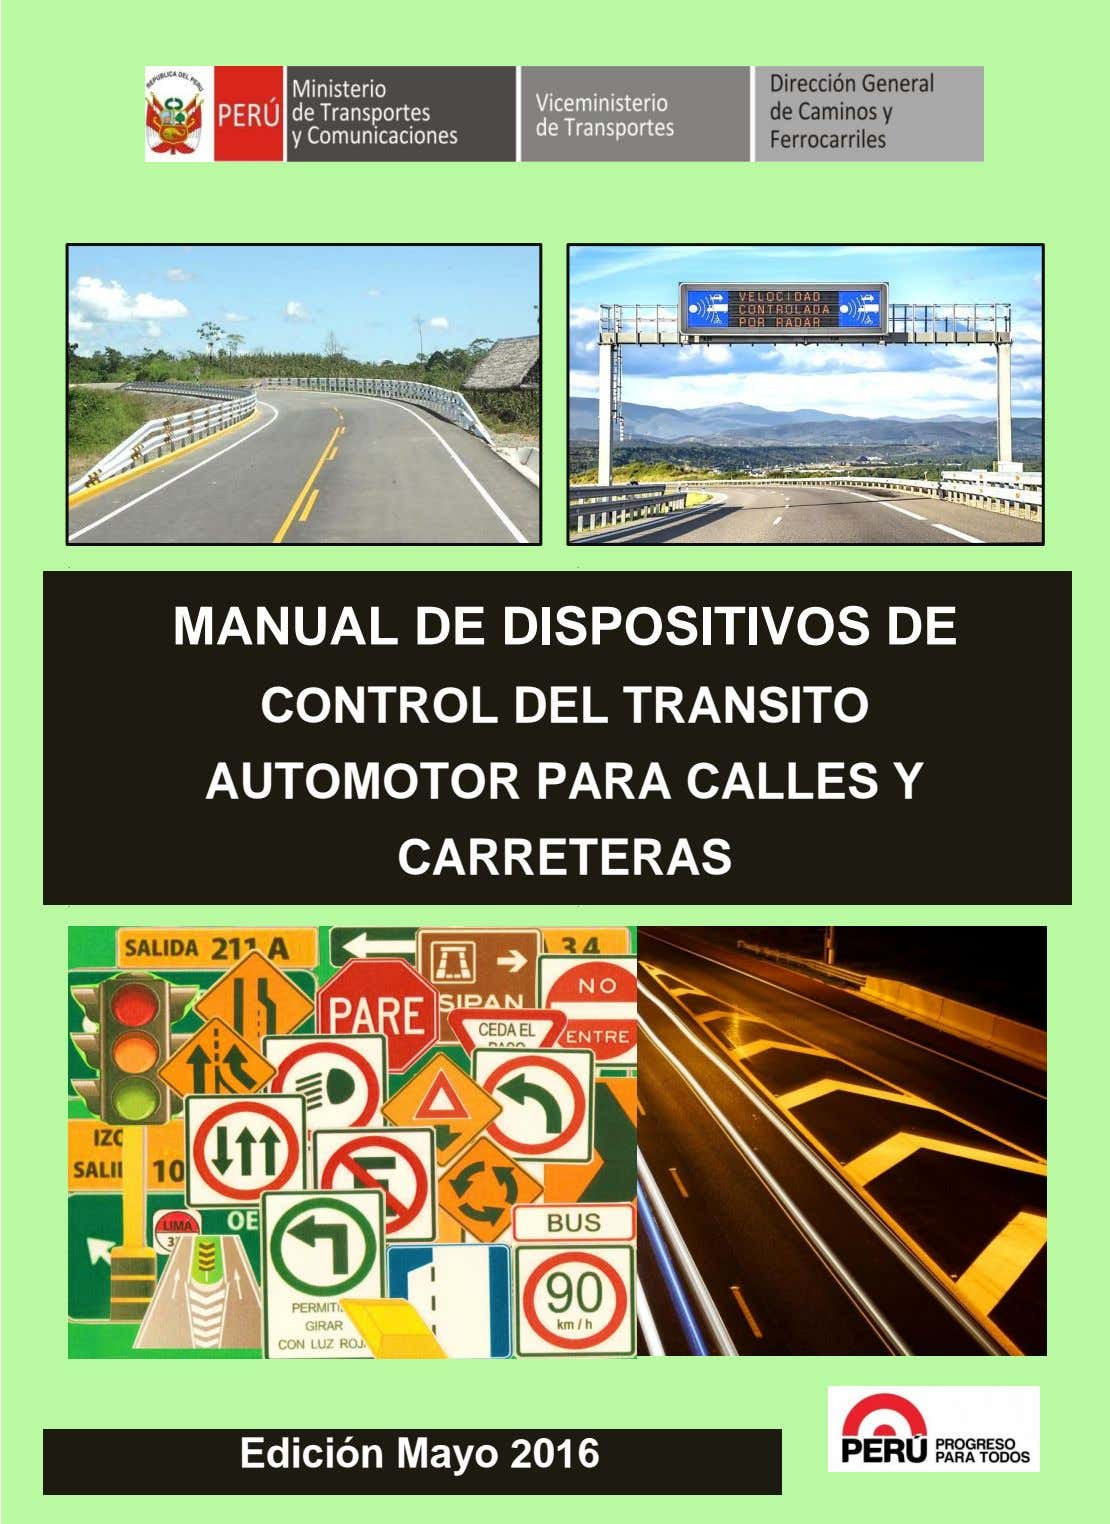 p p MANUAL DE DISPOSITIVOS DE CONTROL DEL TRANSITO AUTOMOTOR PARA CALLES Y CARRETERAS p